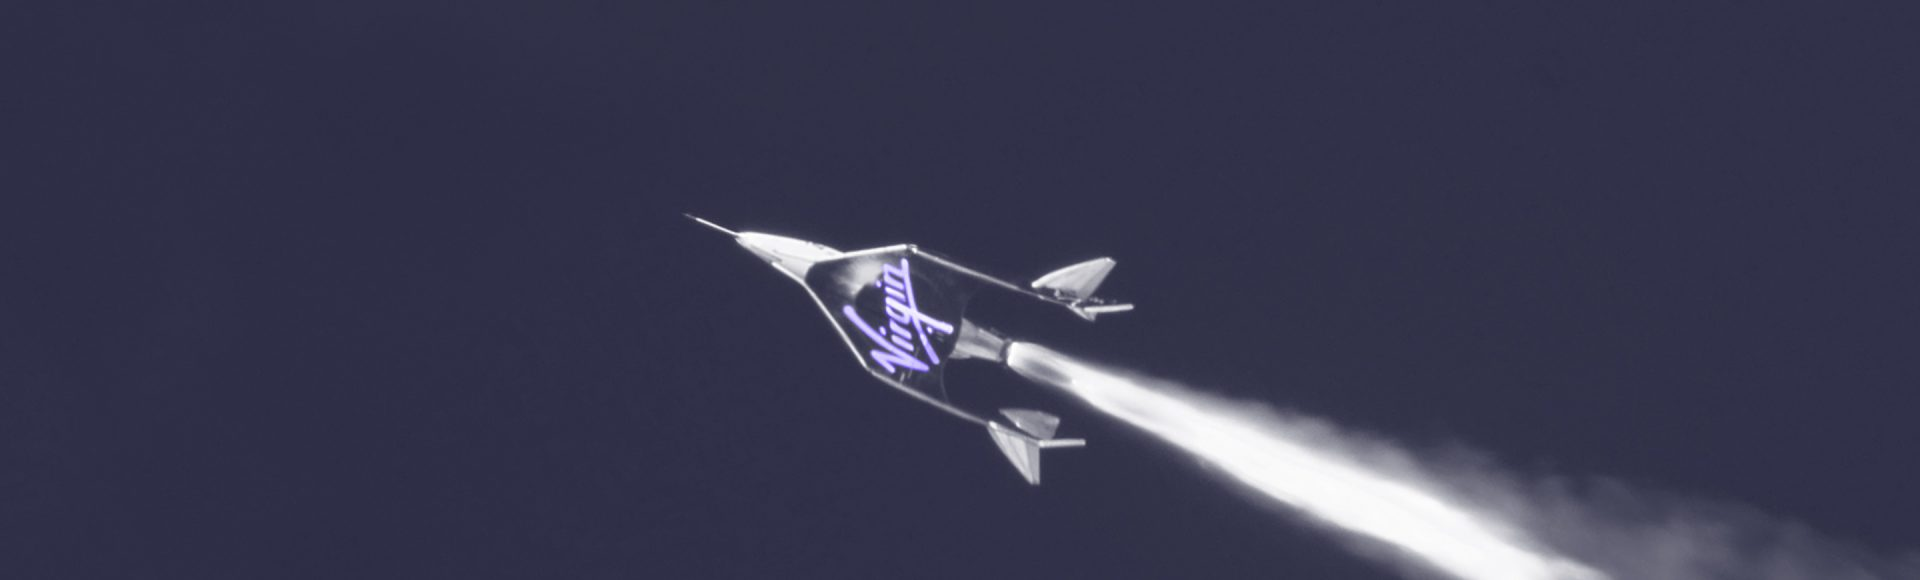 Hypersonic Flight Could Evolve Into a $270 Billion Market